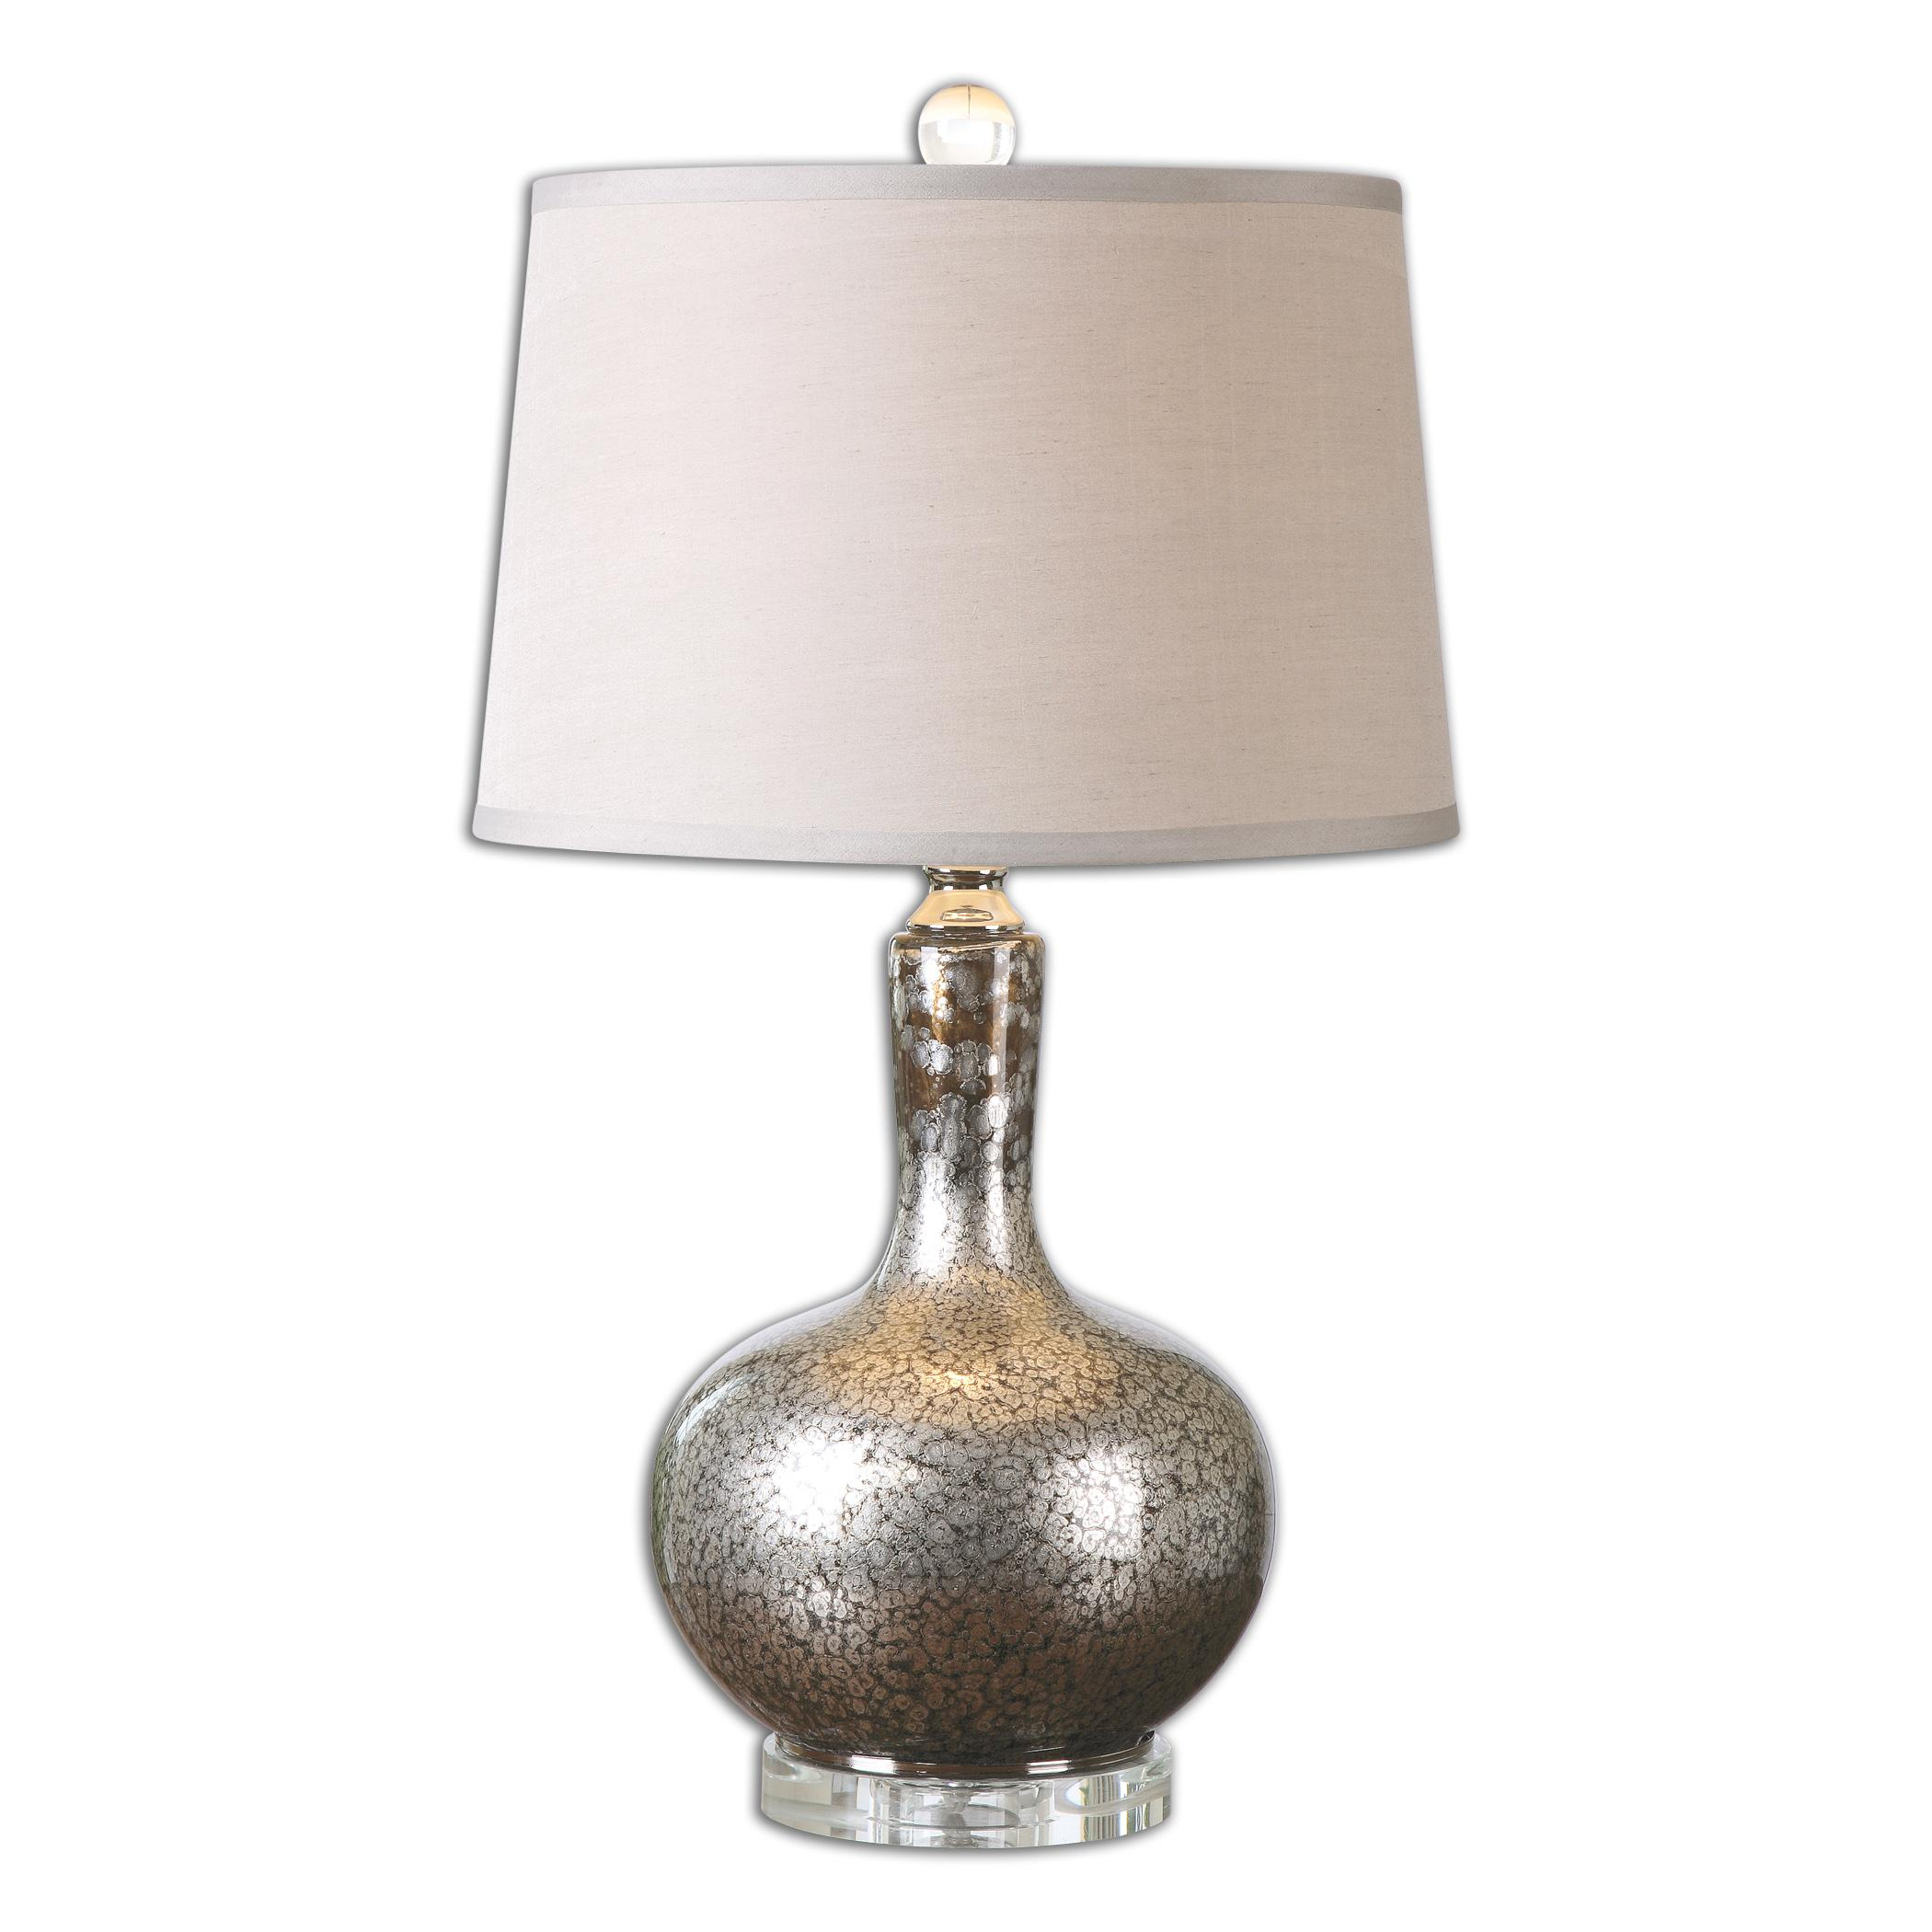 Table Lamps Aemilius Gray Glass Table Lamp by Uttermost at Furniture Superstore - Rochester, MN